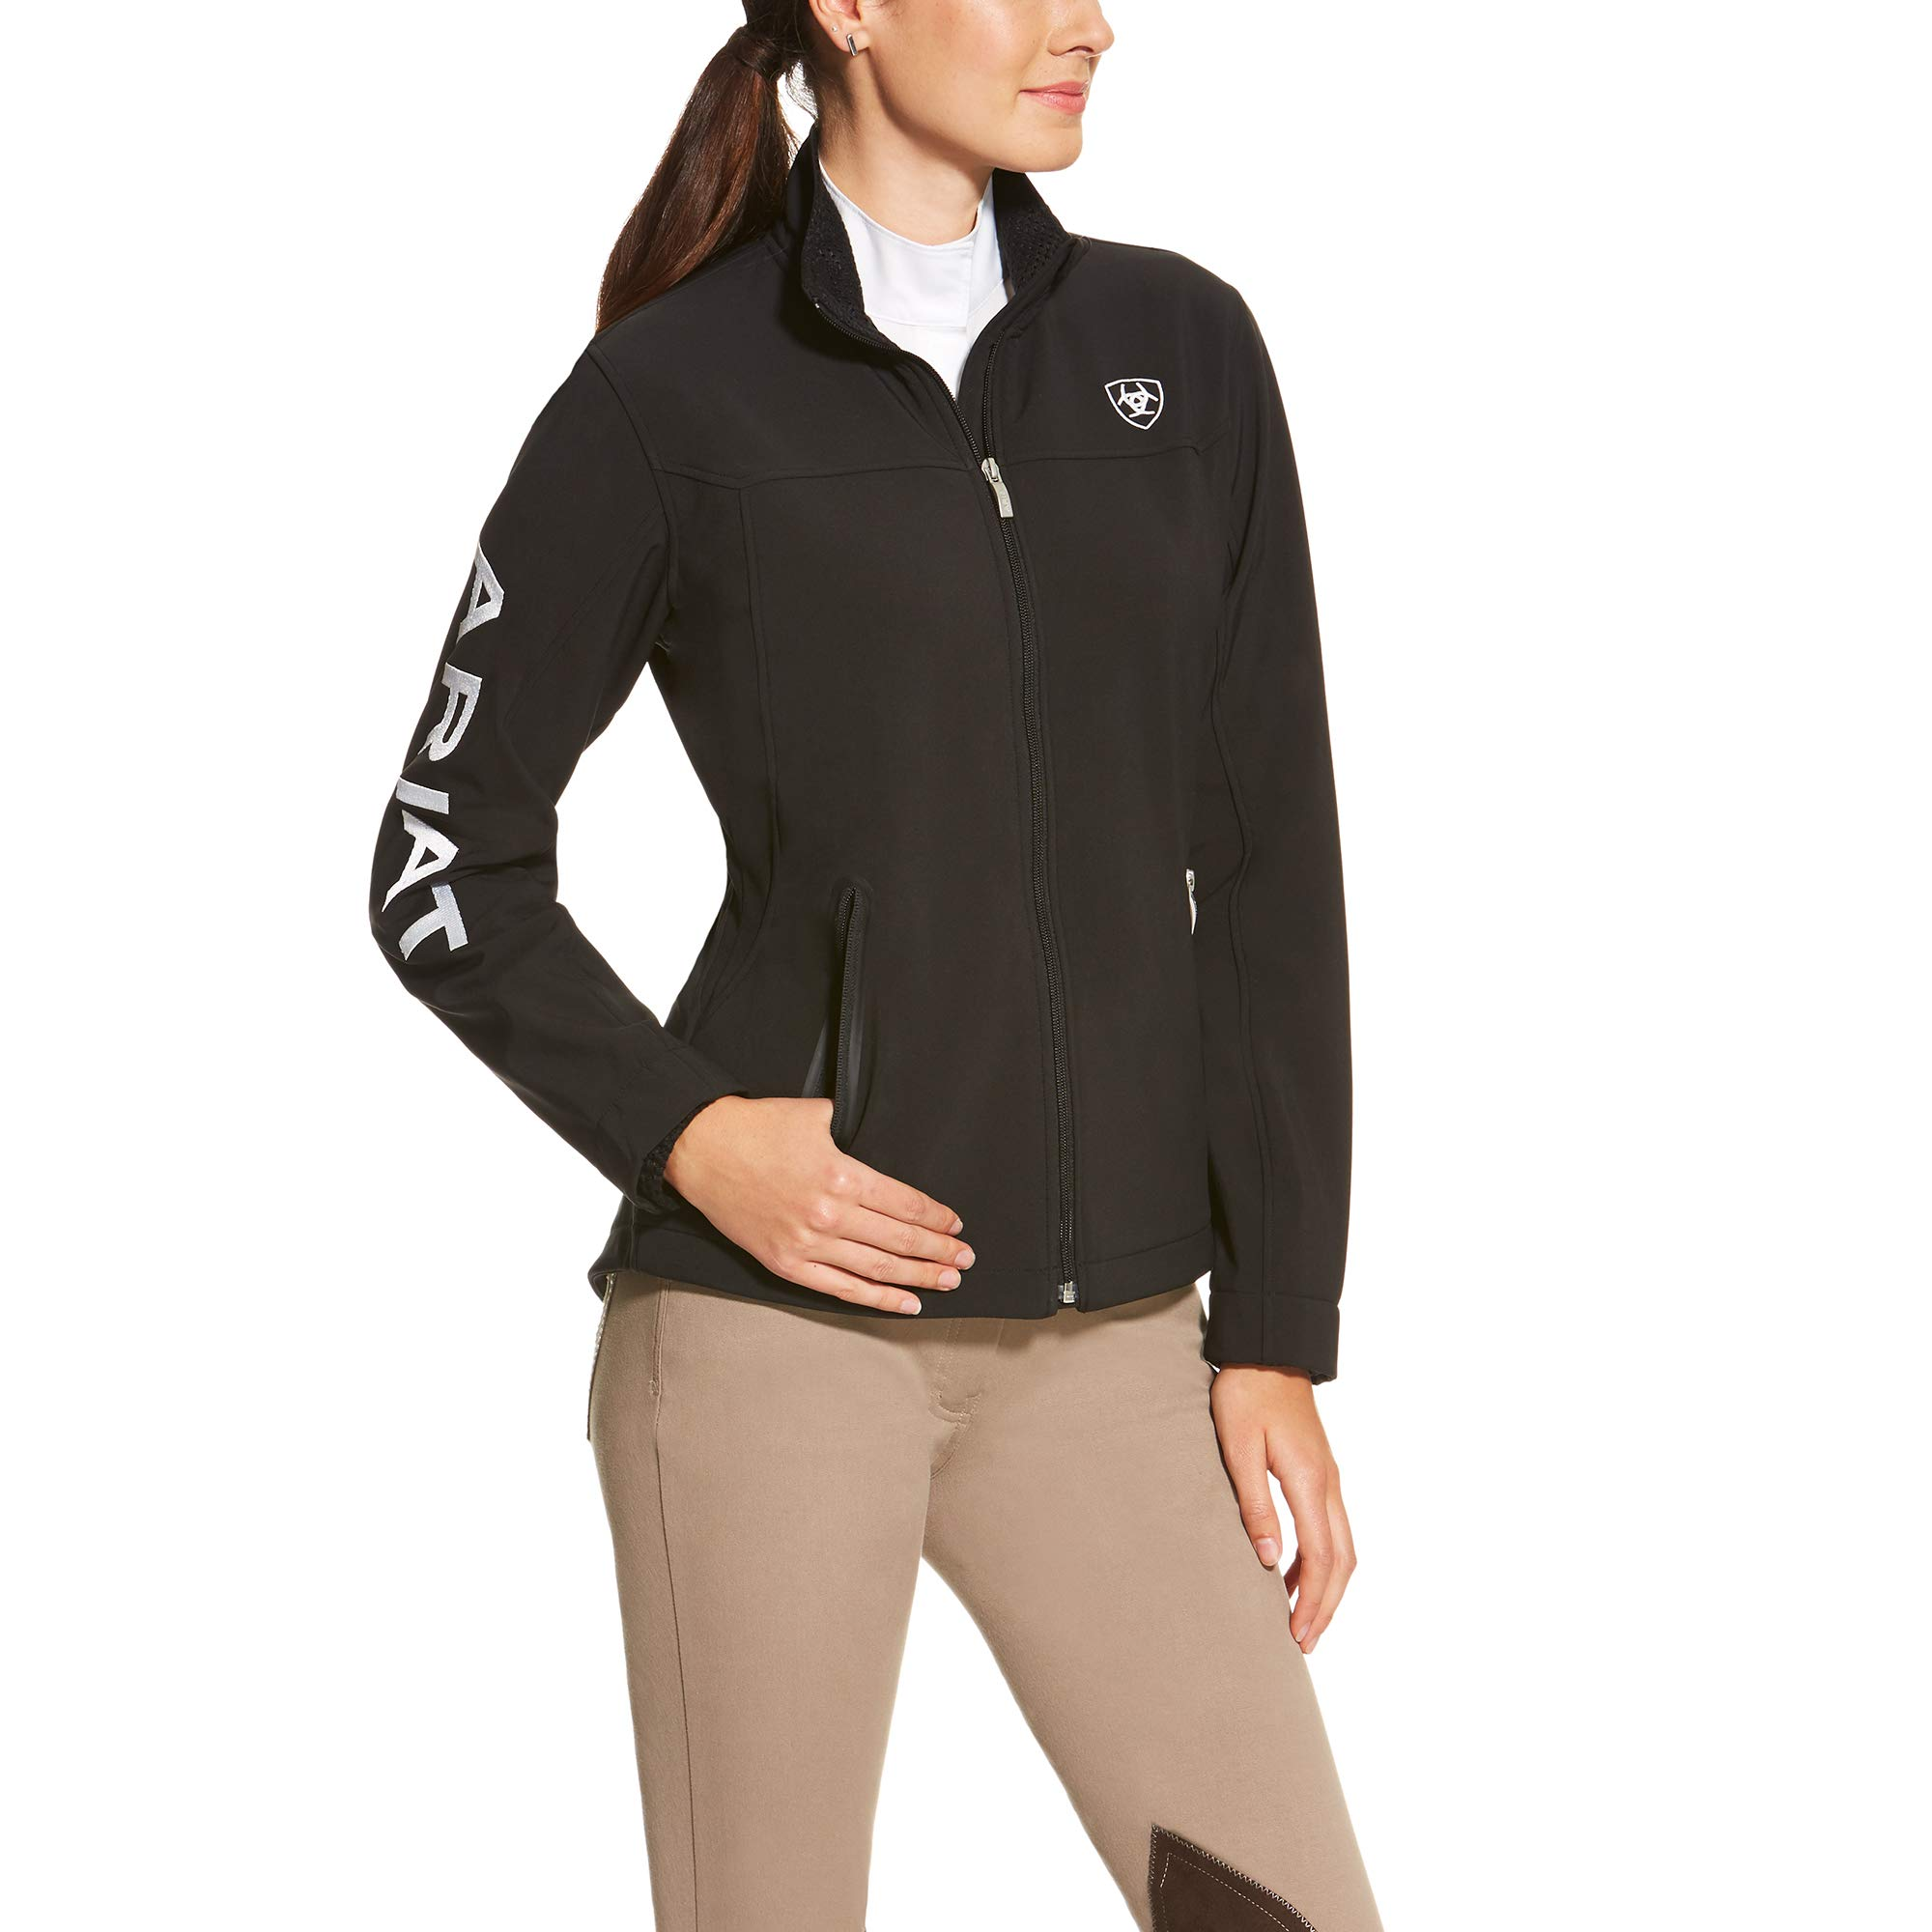 Ariat Women's New Team Softshell Jacket, Black, Large by ARIAT